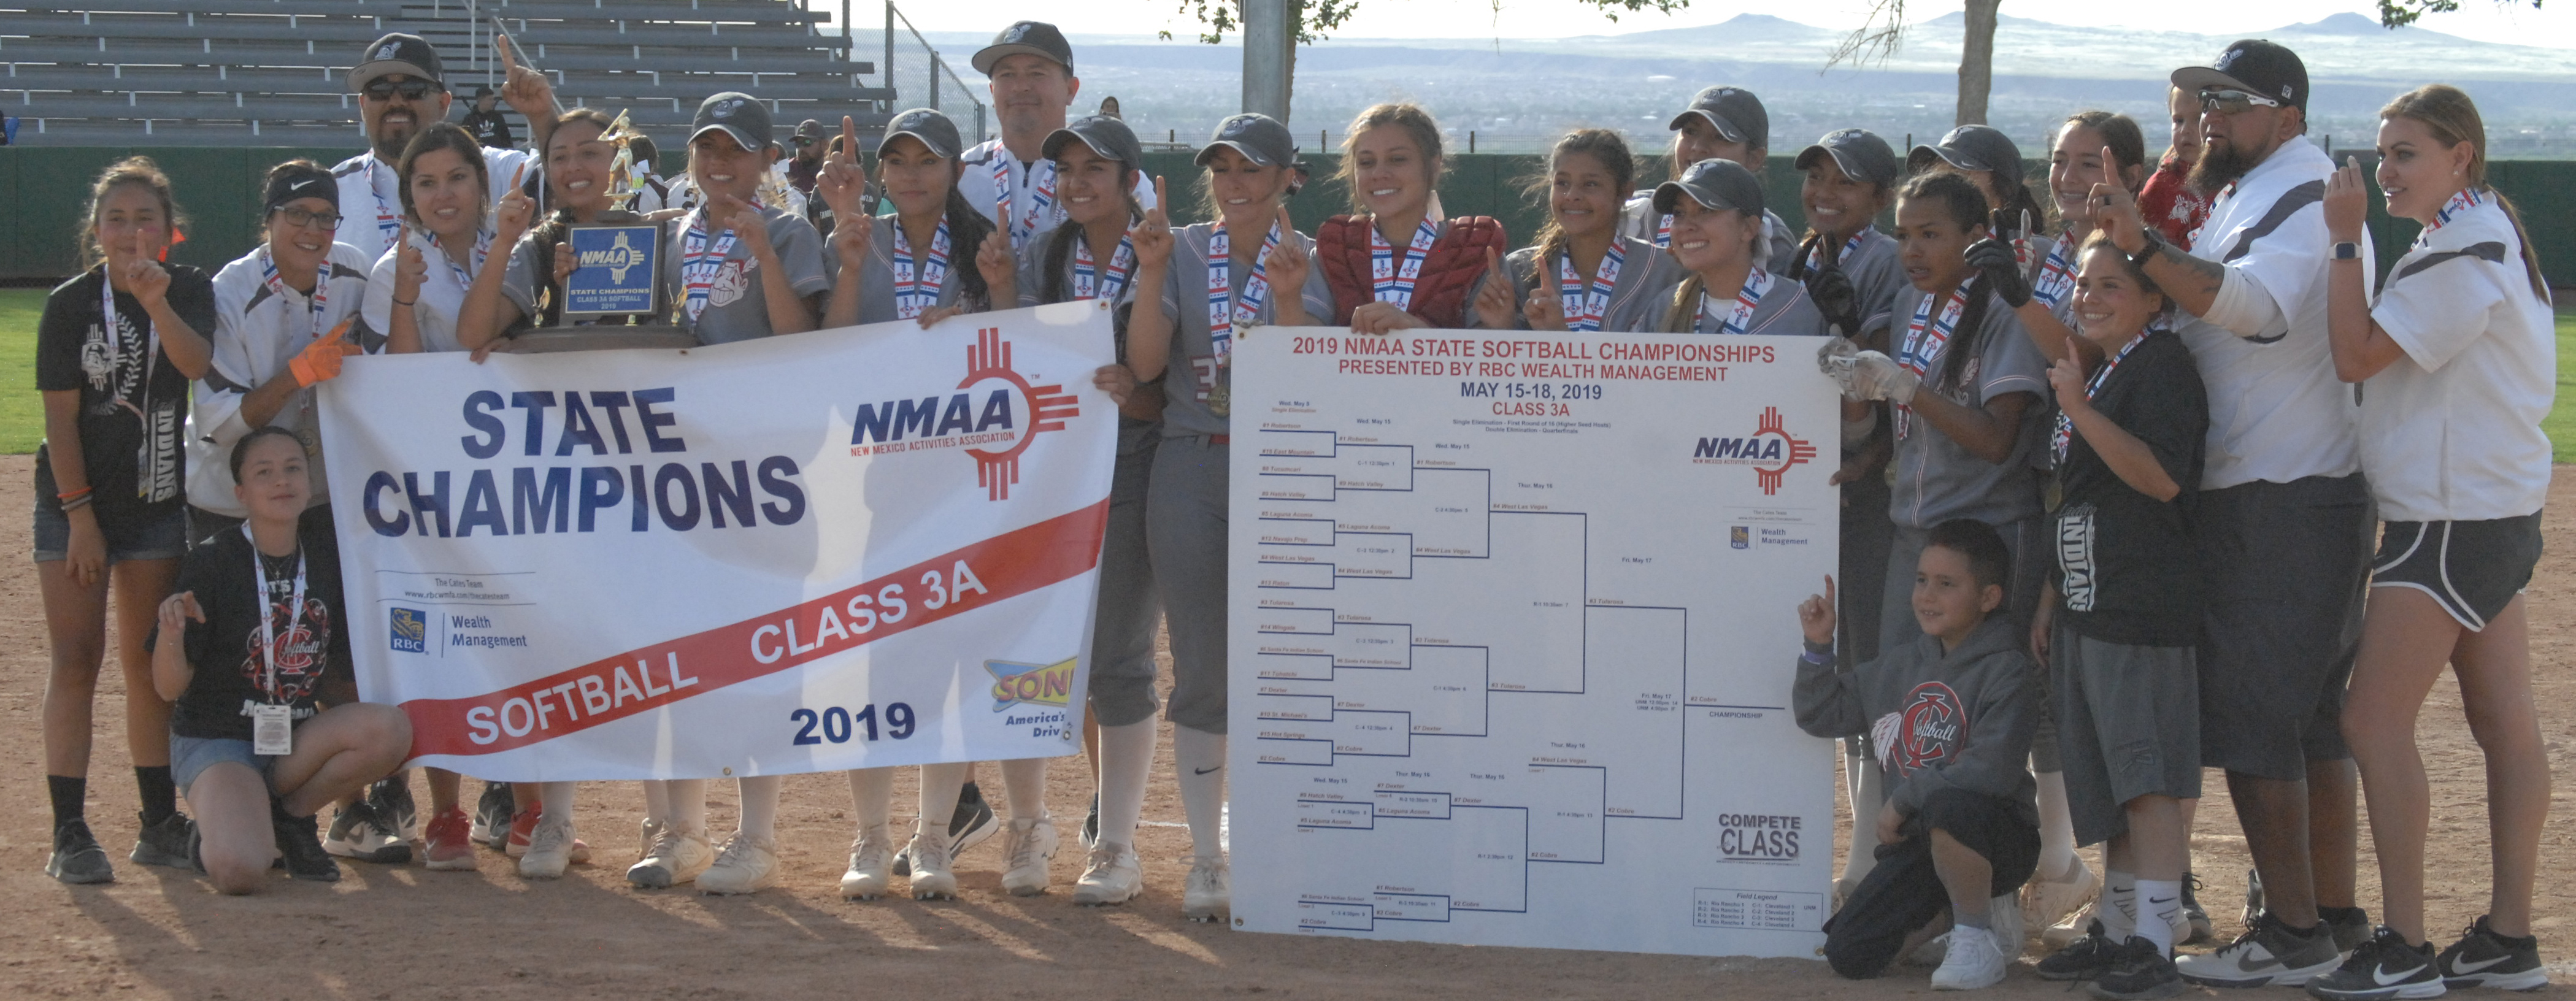 "The Cobre High School Lady Indians pose with the championship trophy and banner after beating Tularosa 12-11 in the ""if"" game of the state Class AAA championship round Friday afternoon at the University of New Mexico softball field in Albuquerque."